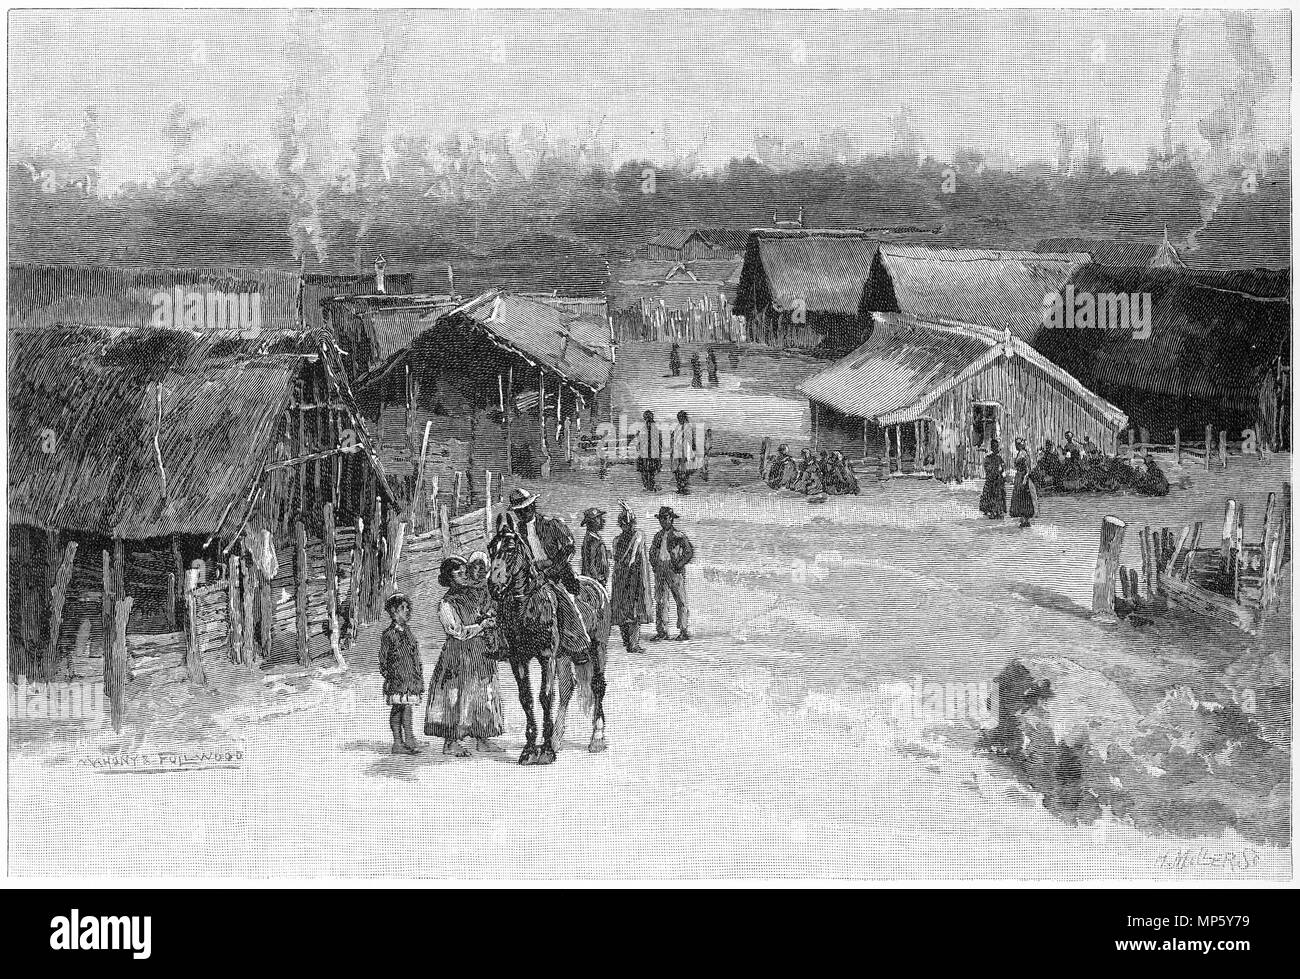 Engraving of the Maori settlement at Parihaka, famous during the New Zealand Land Wars. From the Picturesque Atlas of Australasia Vol 3, 1886 - Stock Image